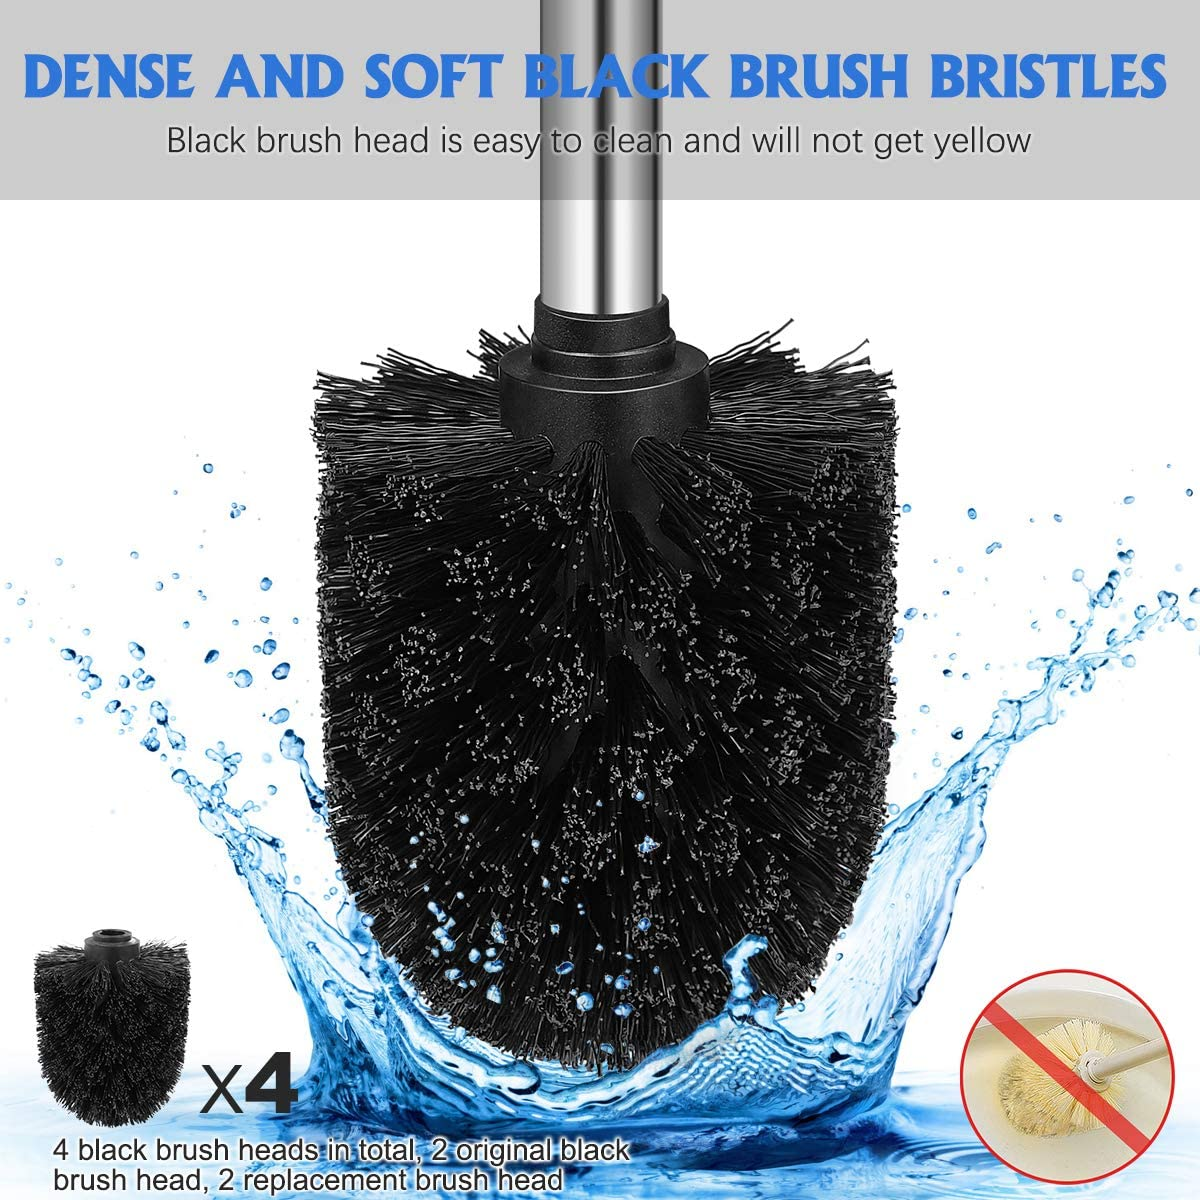 Toilet Brush with Holder, Premium 304 Stainless Steel-Anti-Rust, Toilet Brushes 2 Pack with 4 Dense Black Brush Heads